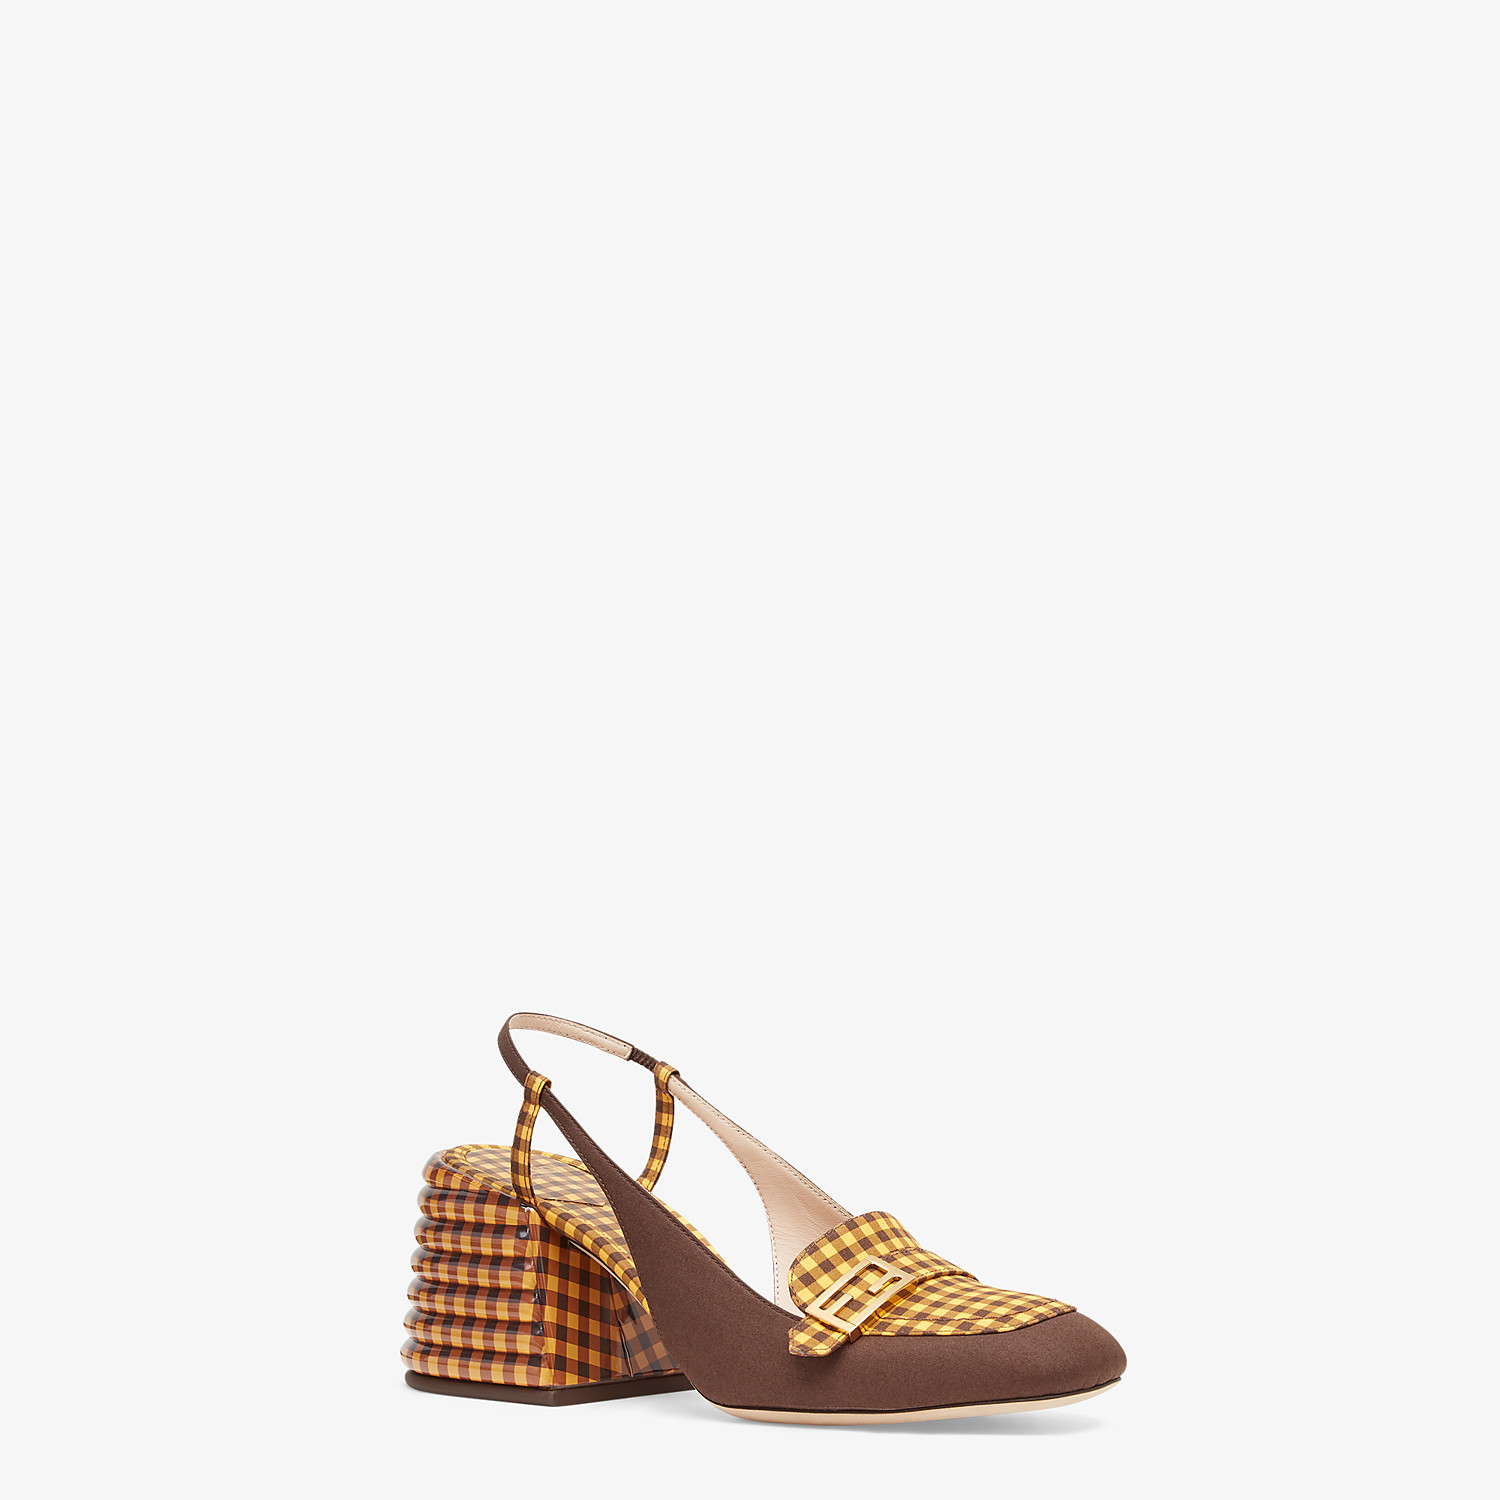 FENDI SLINGBACKS - Brown cotton Promenade - view 2 detail